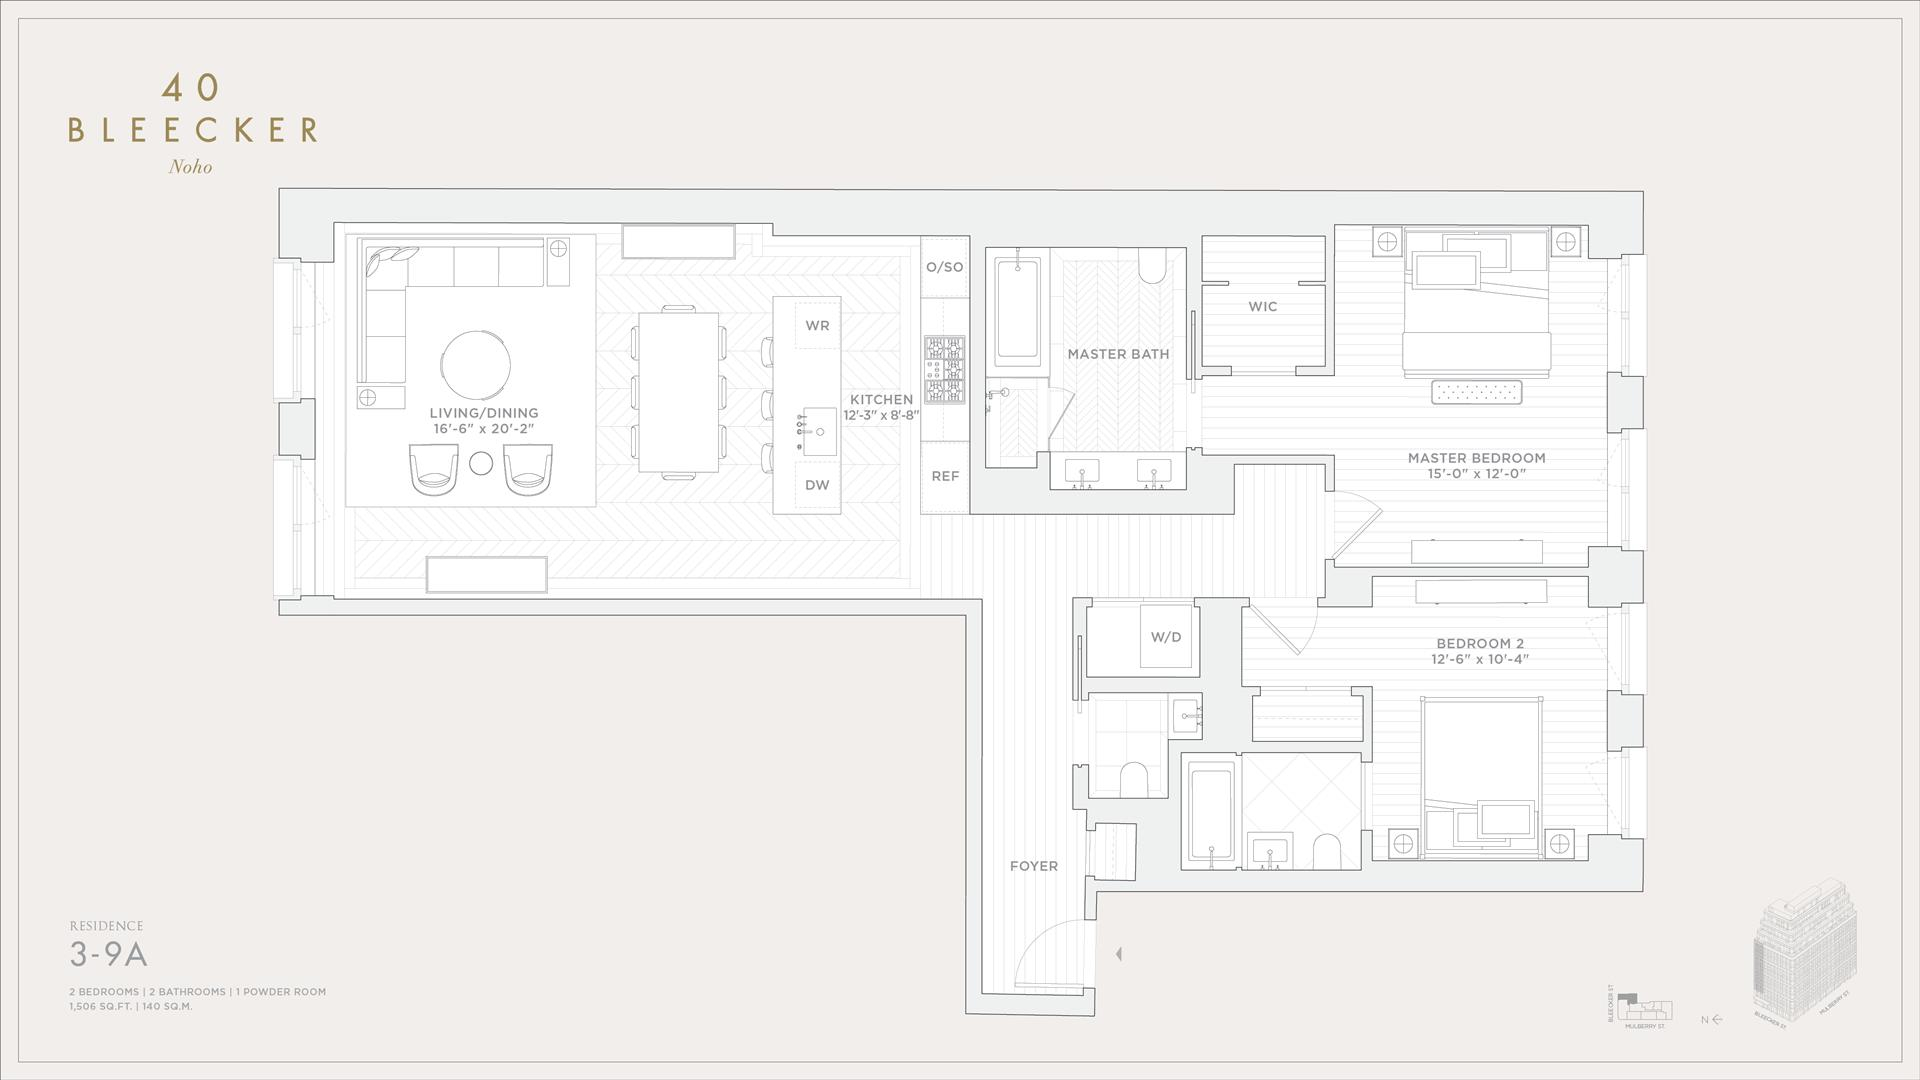 Floor plan of 40 Bleecker Street, 4A - NoHo, New York